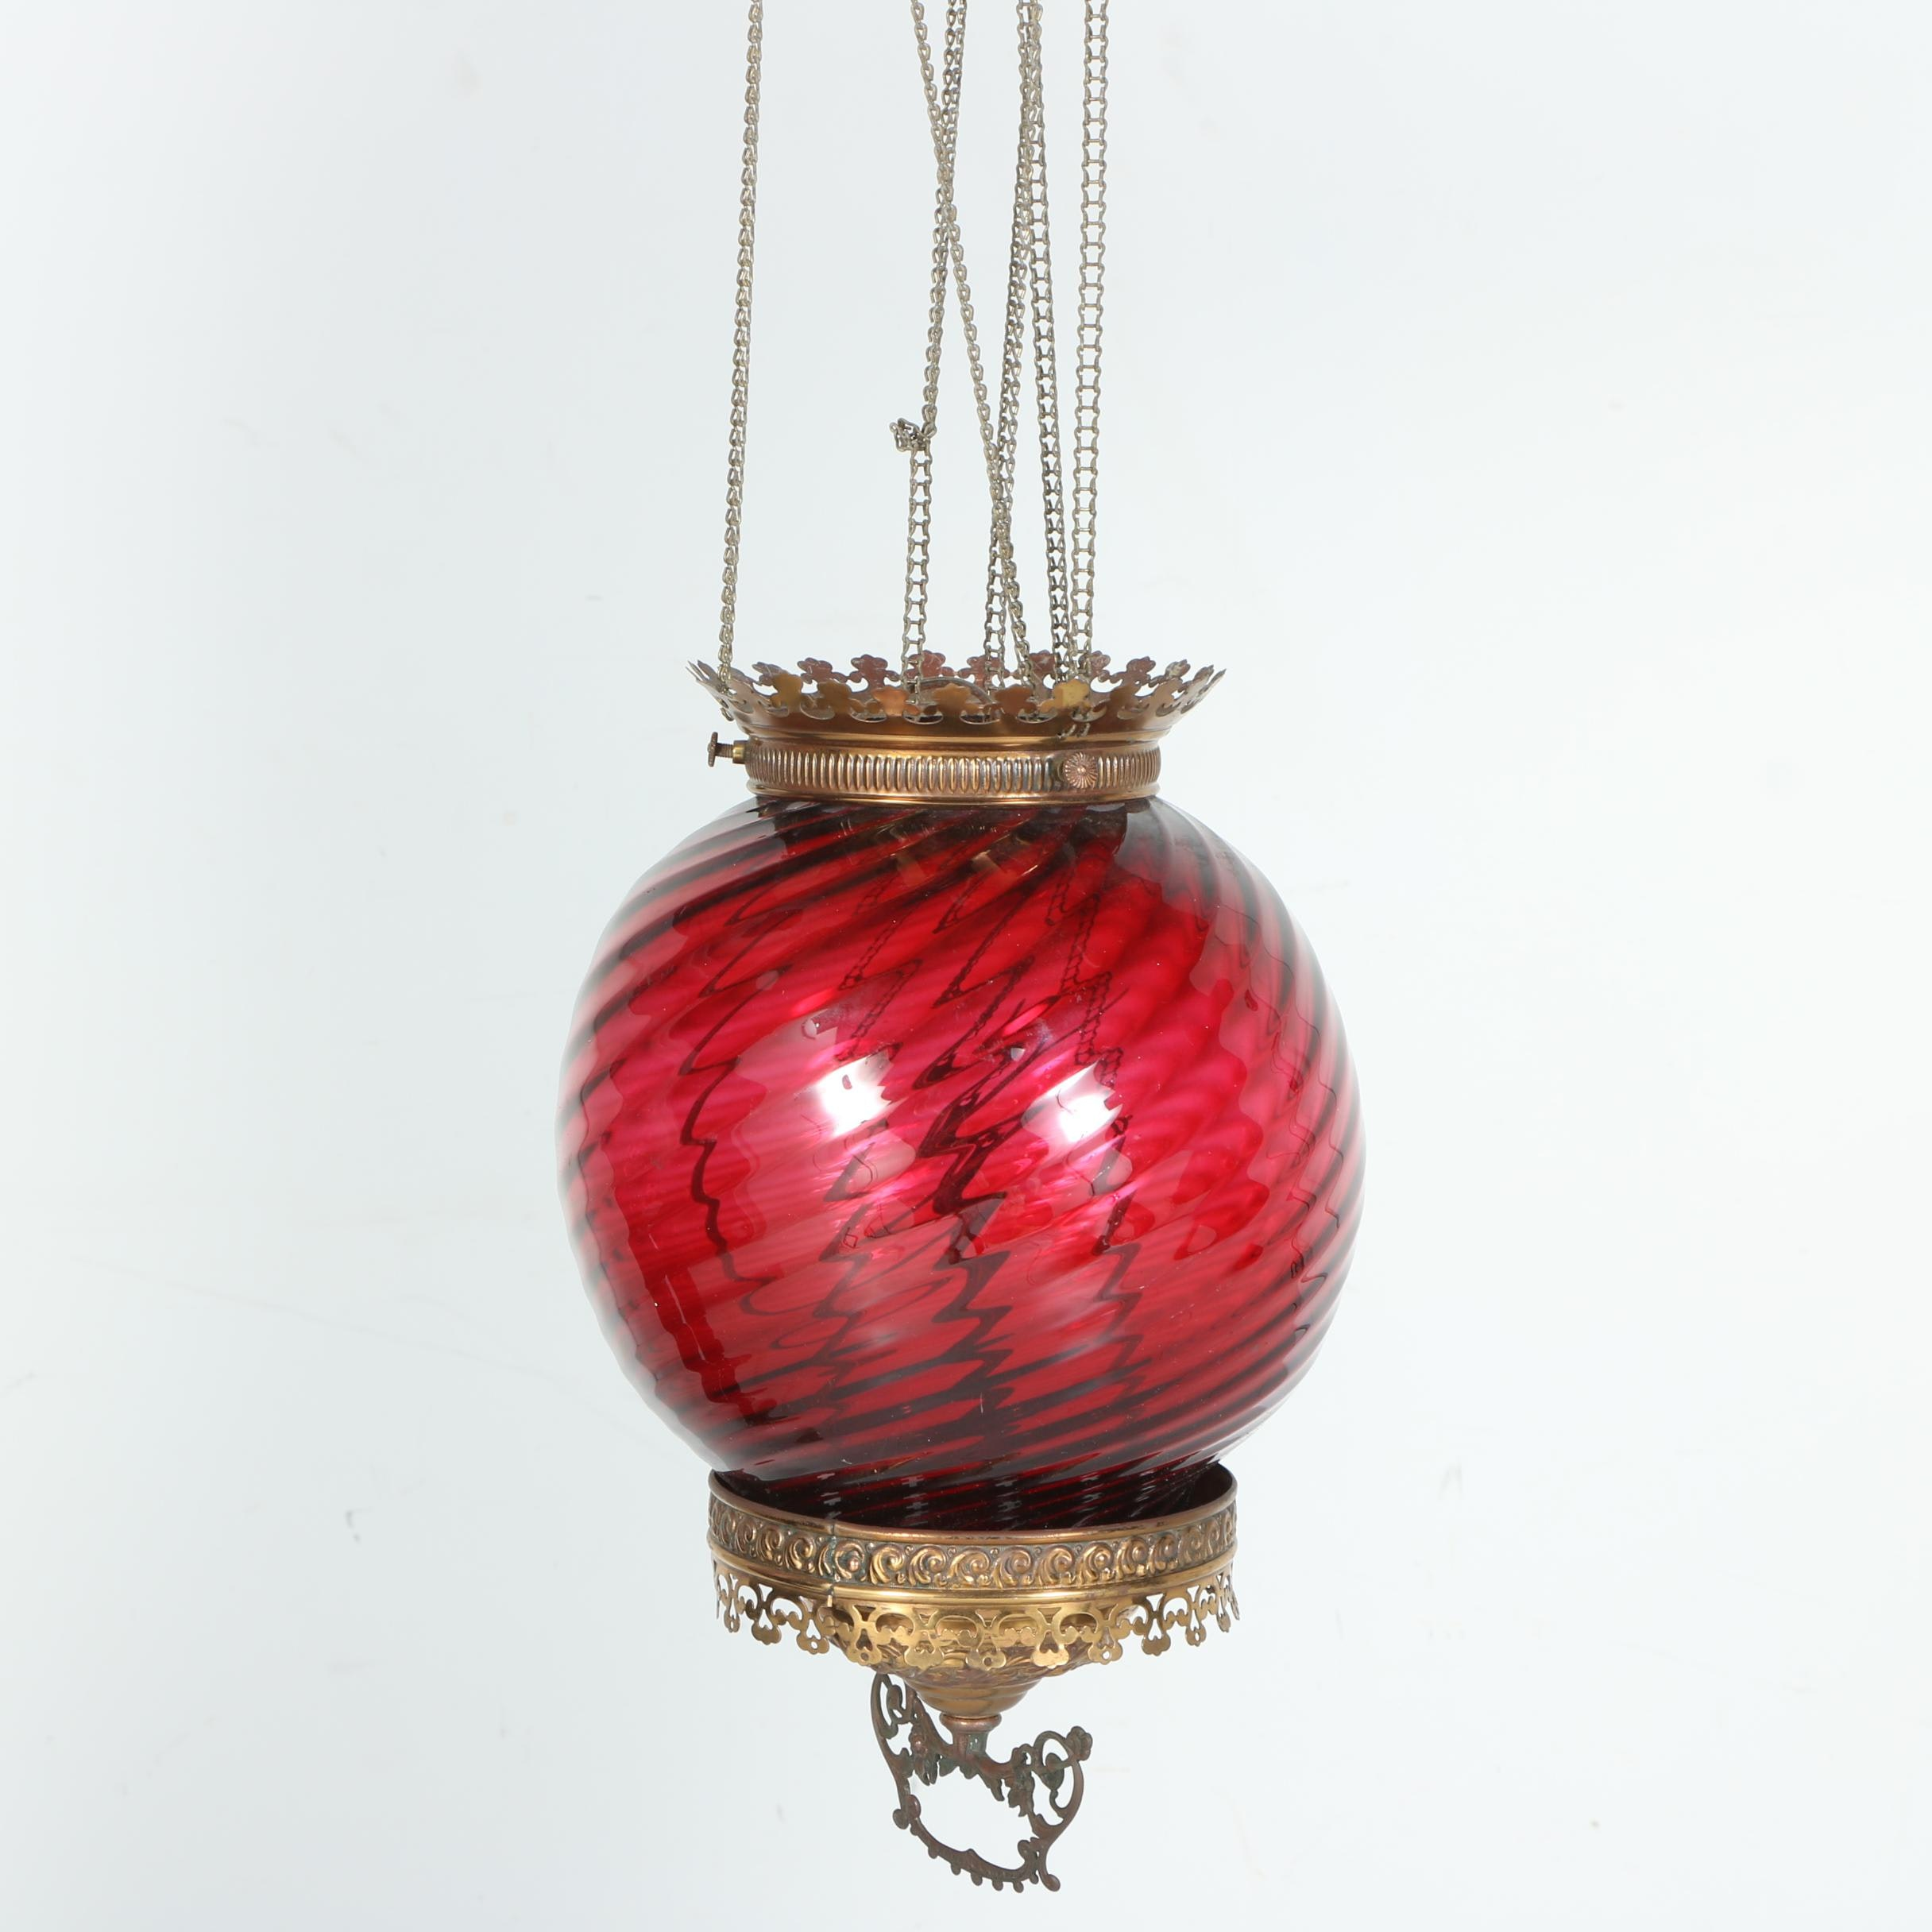 Pendant Light with Cranberry Colored Globe